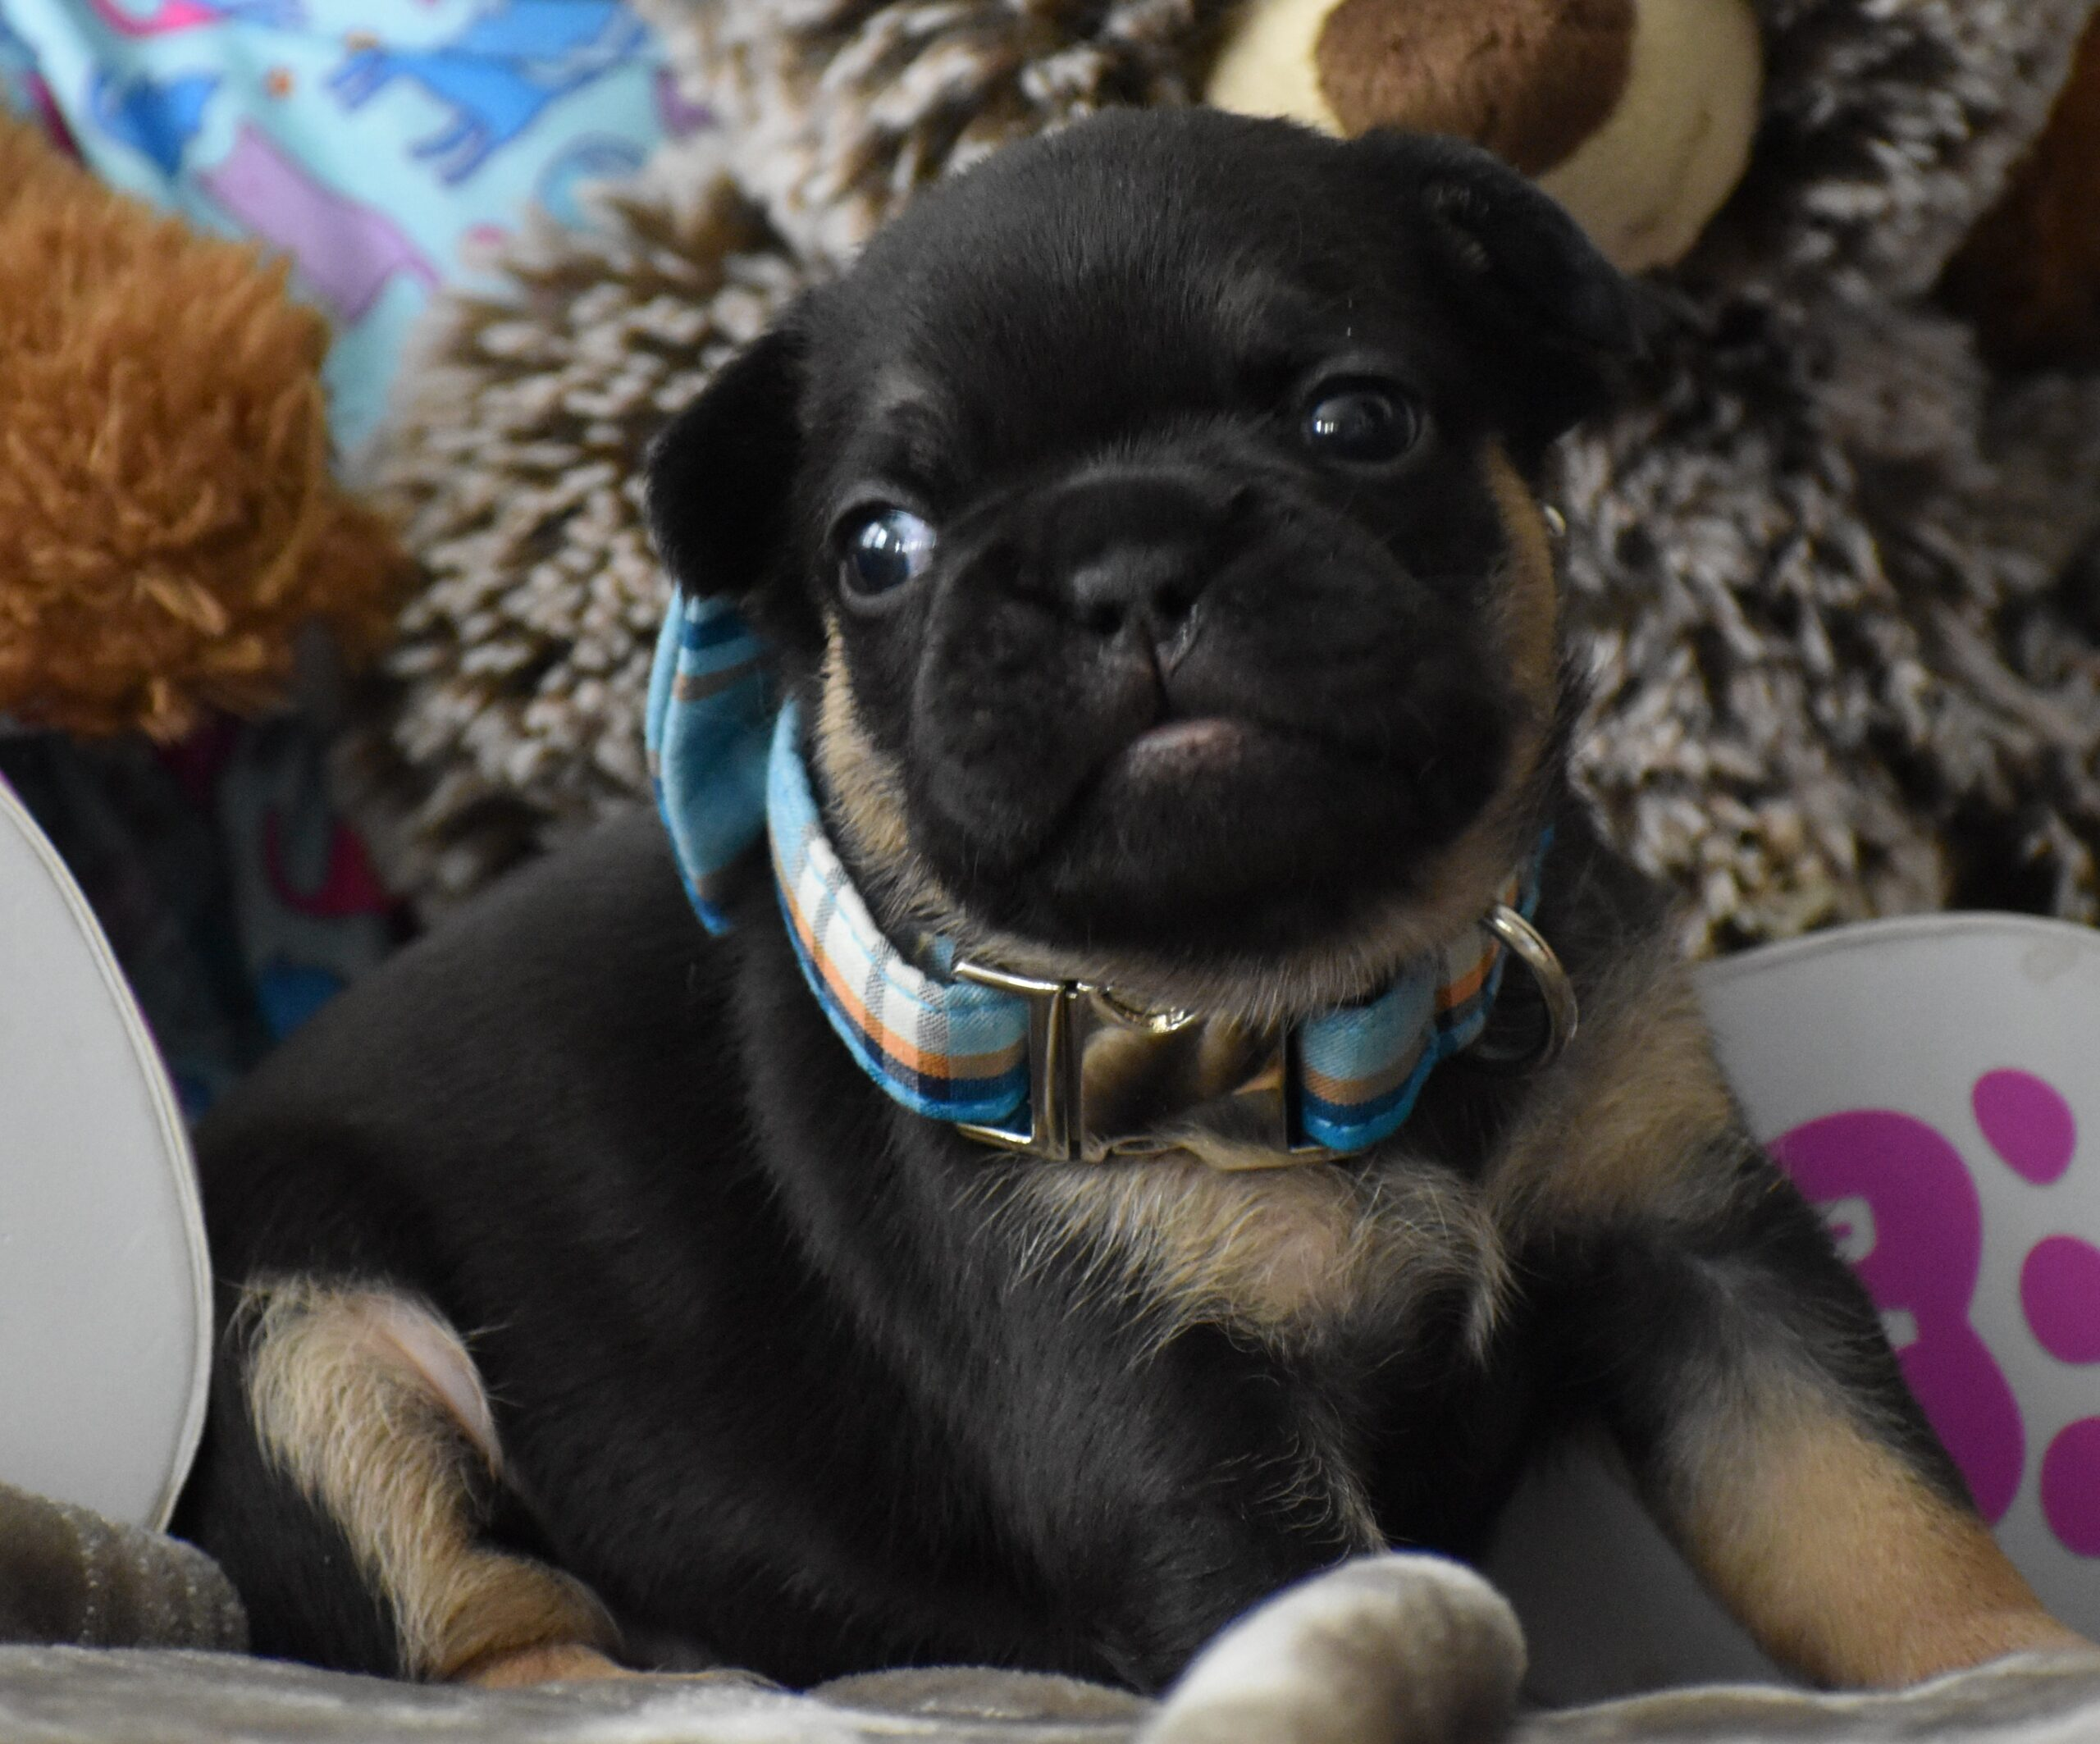 Black Puppy with Blue Bow